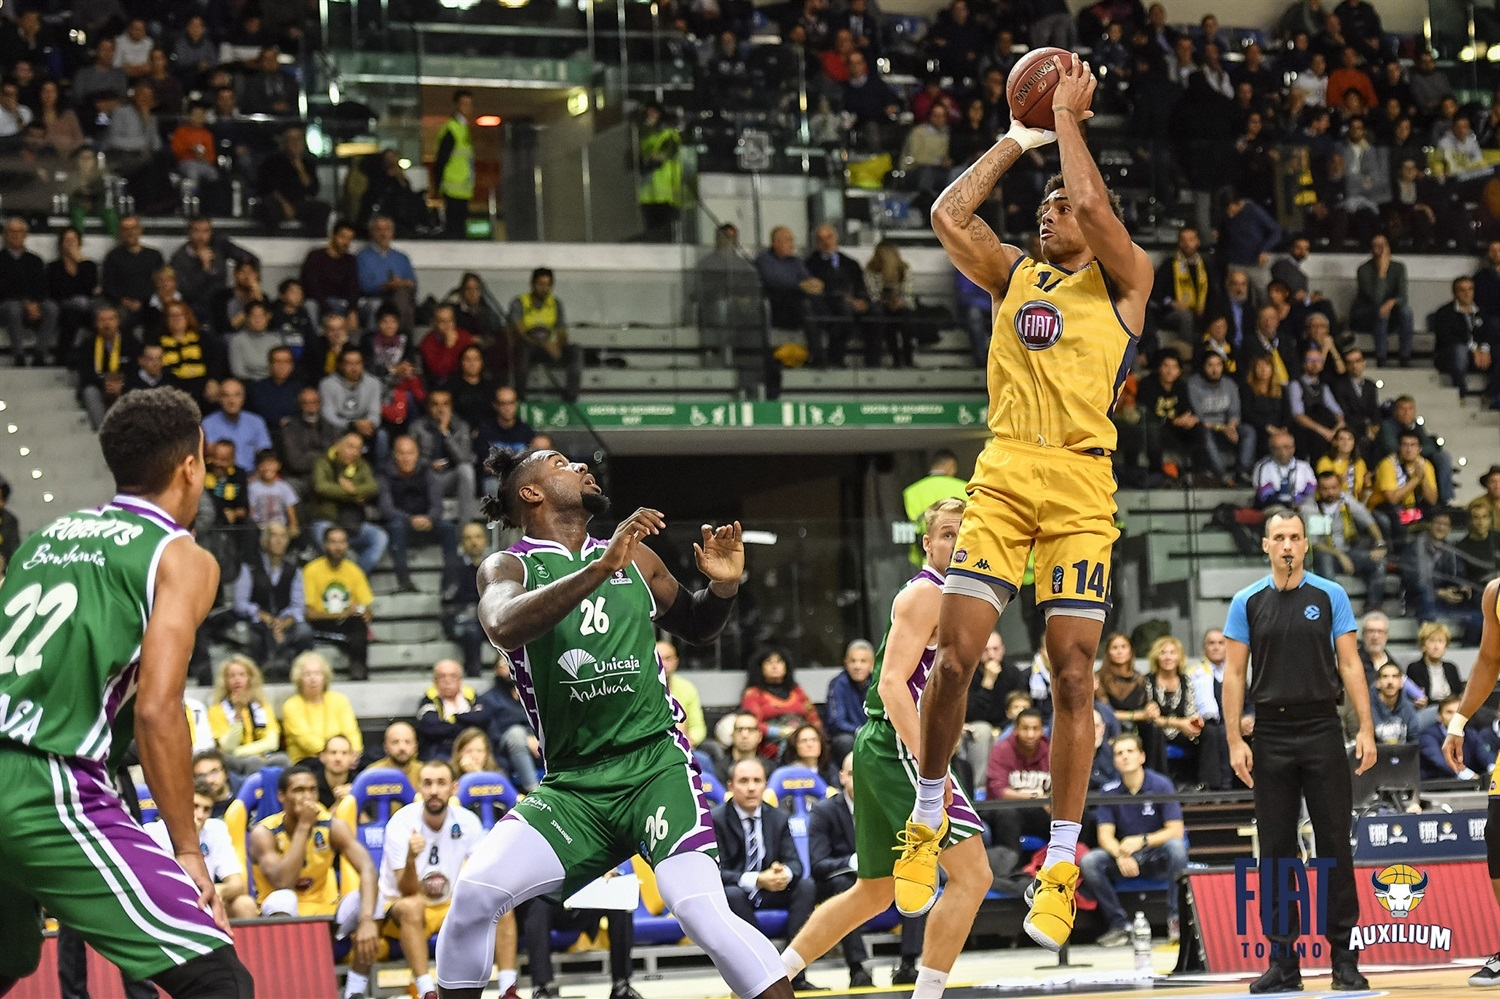 James McAdoo - Fiat Turin (photo Fiat Turin) - EC18